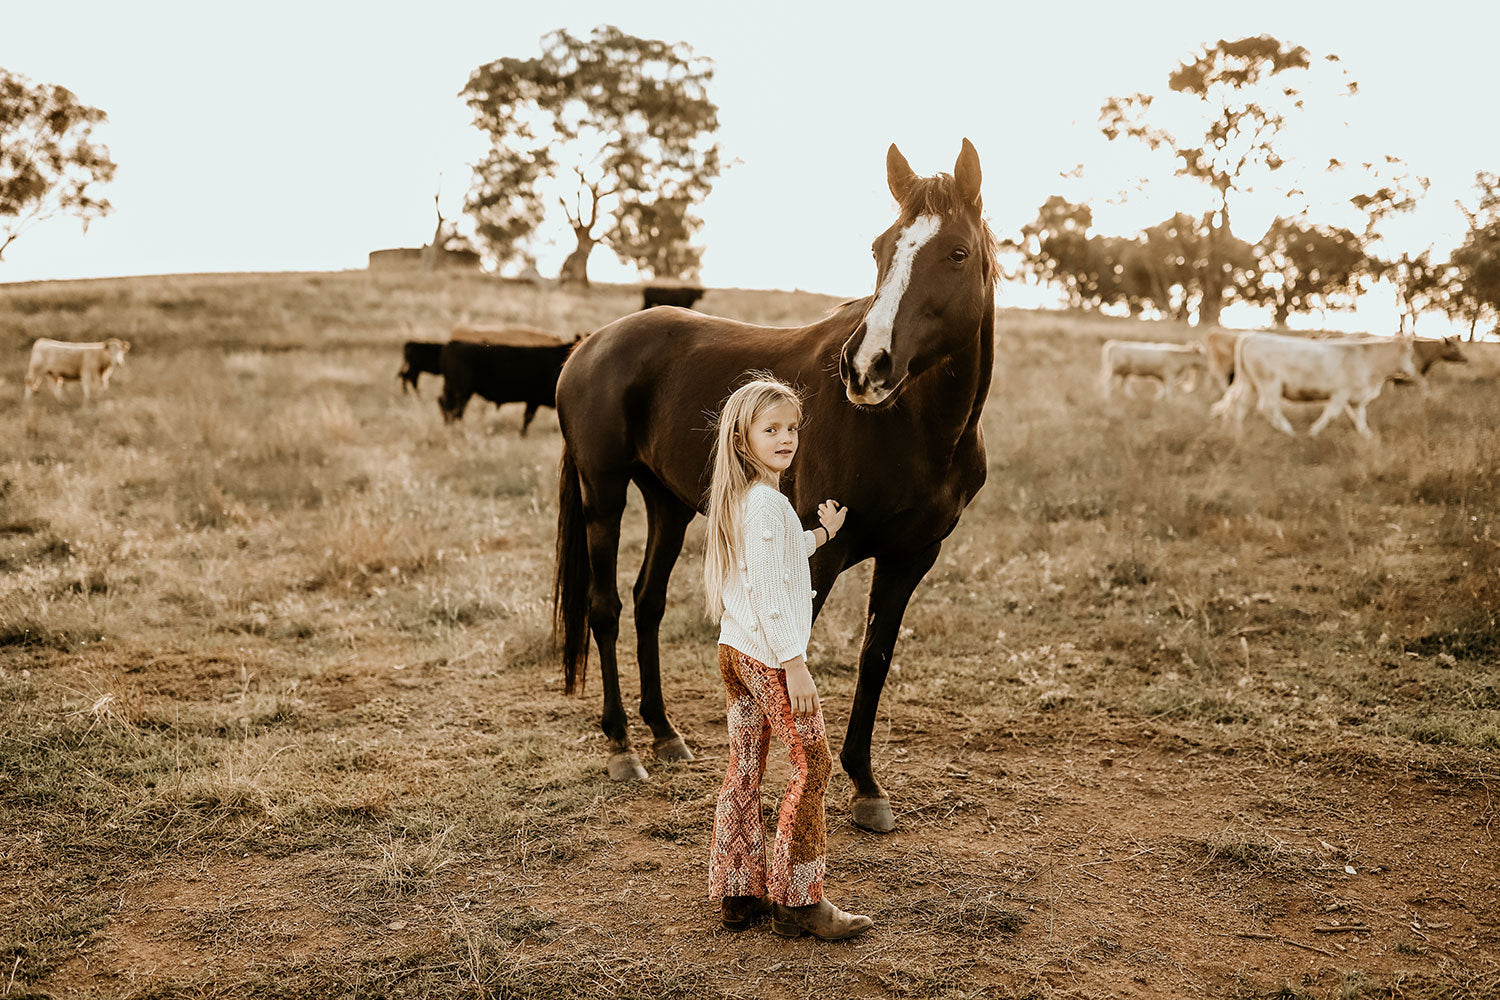 Life on the Land with Photographer Kacie Herd